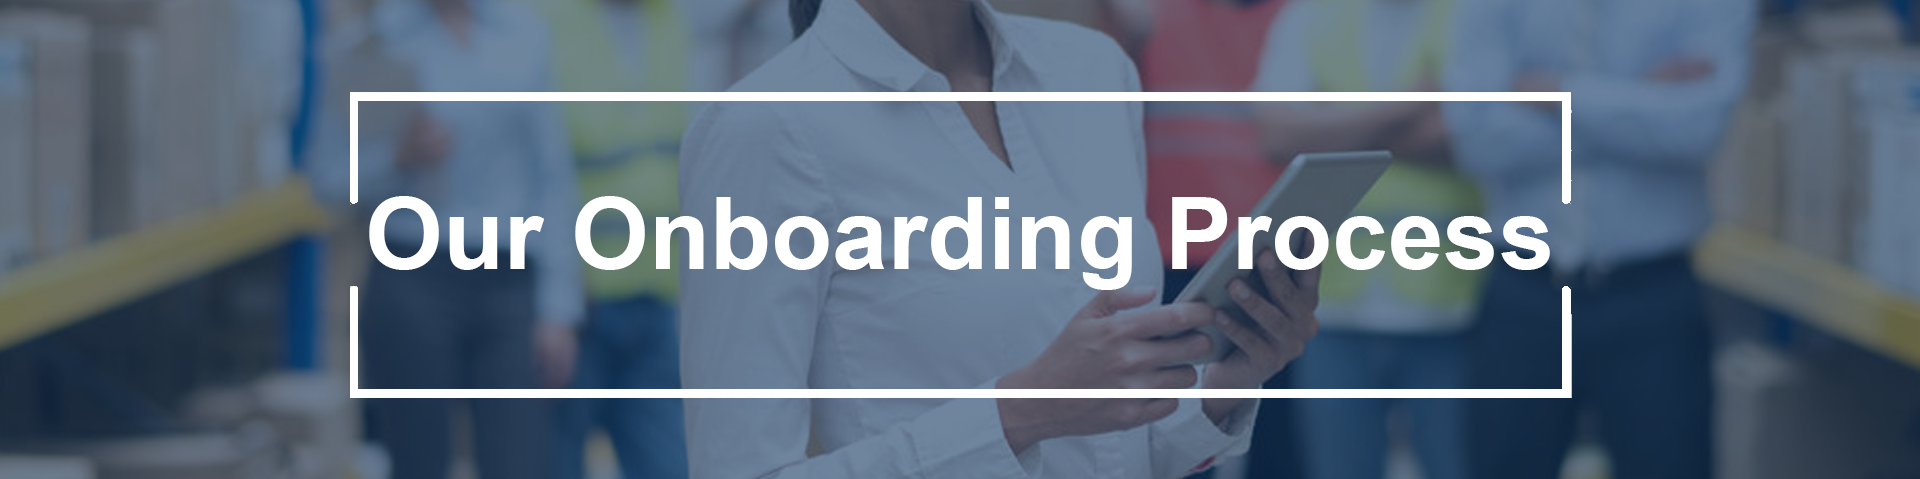 eCommerce Direct Onboarding Process